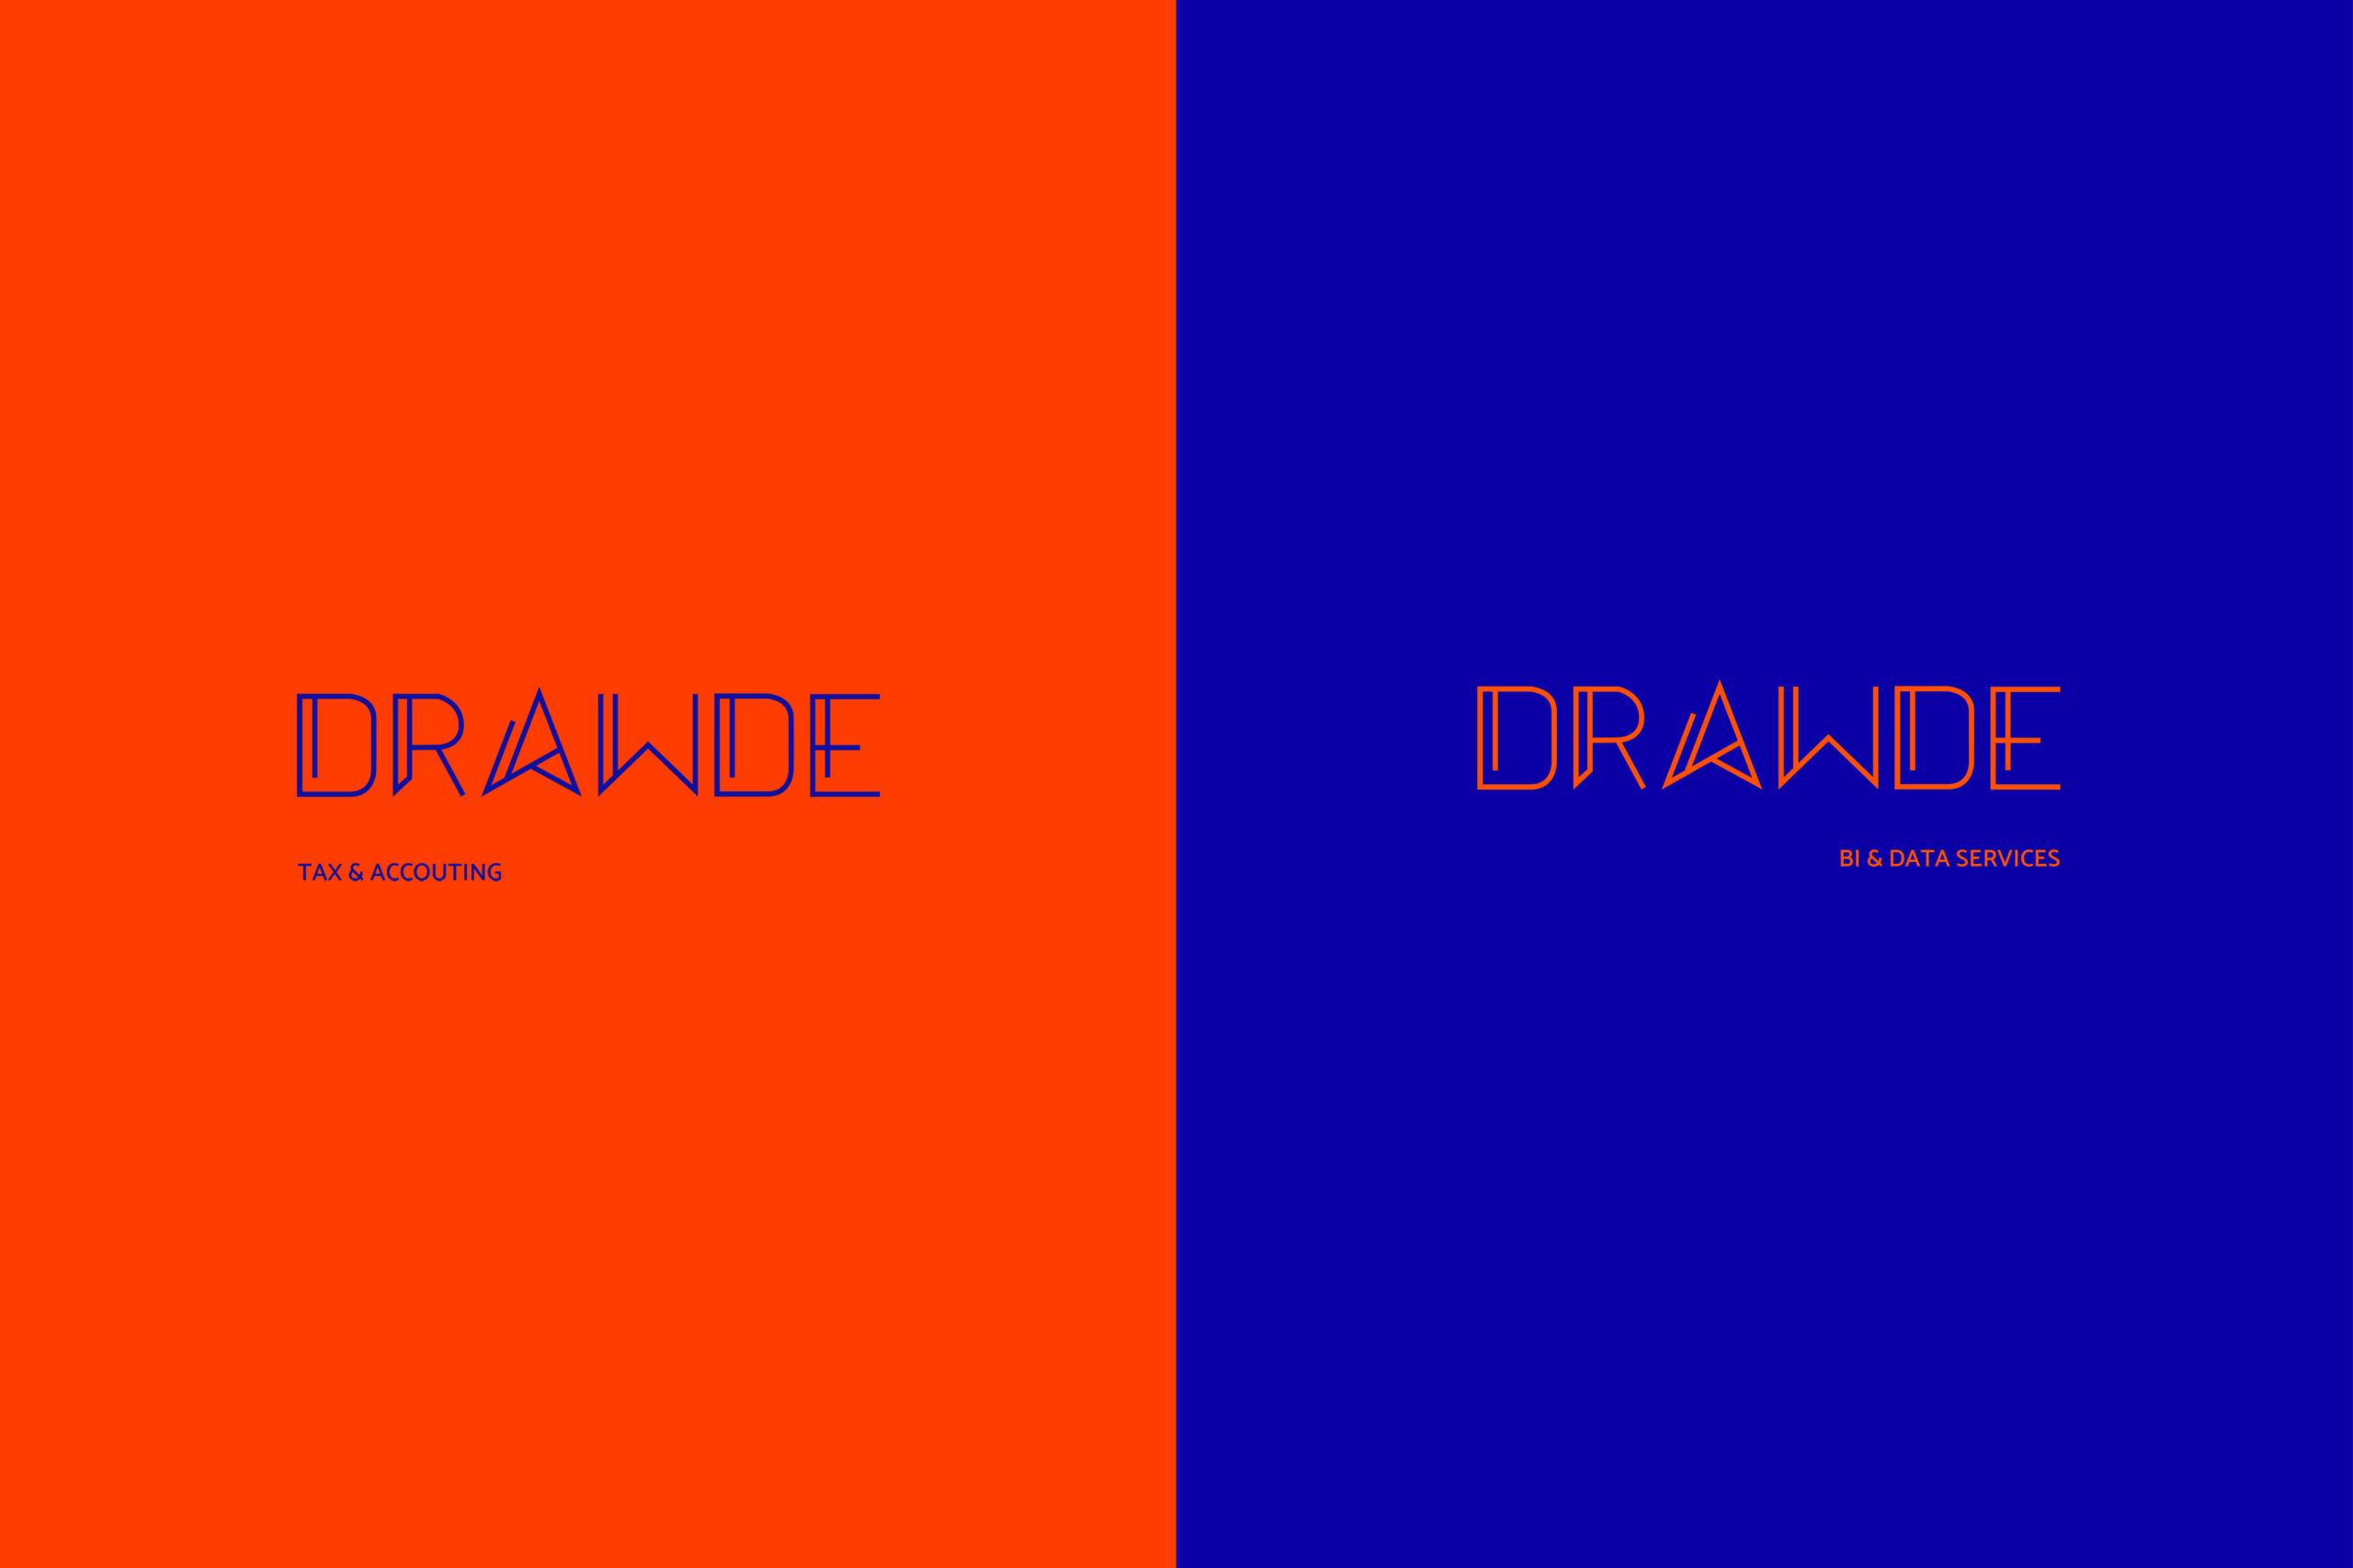 Version of the Drawde logo. In orange for her and blue for him.